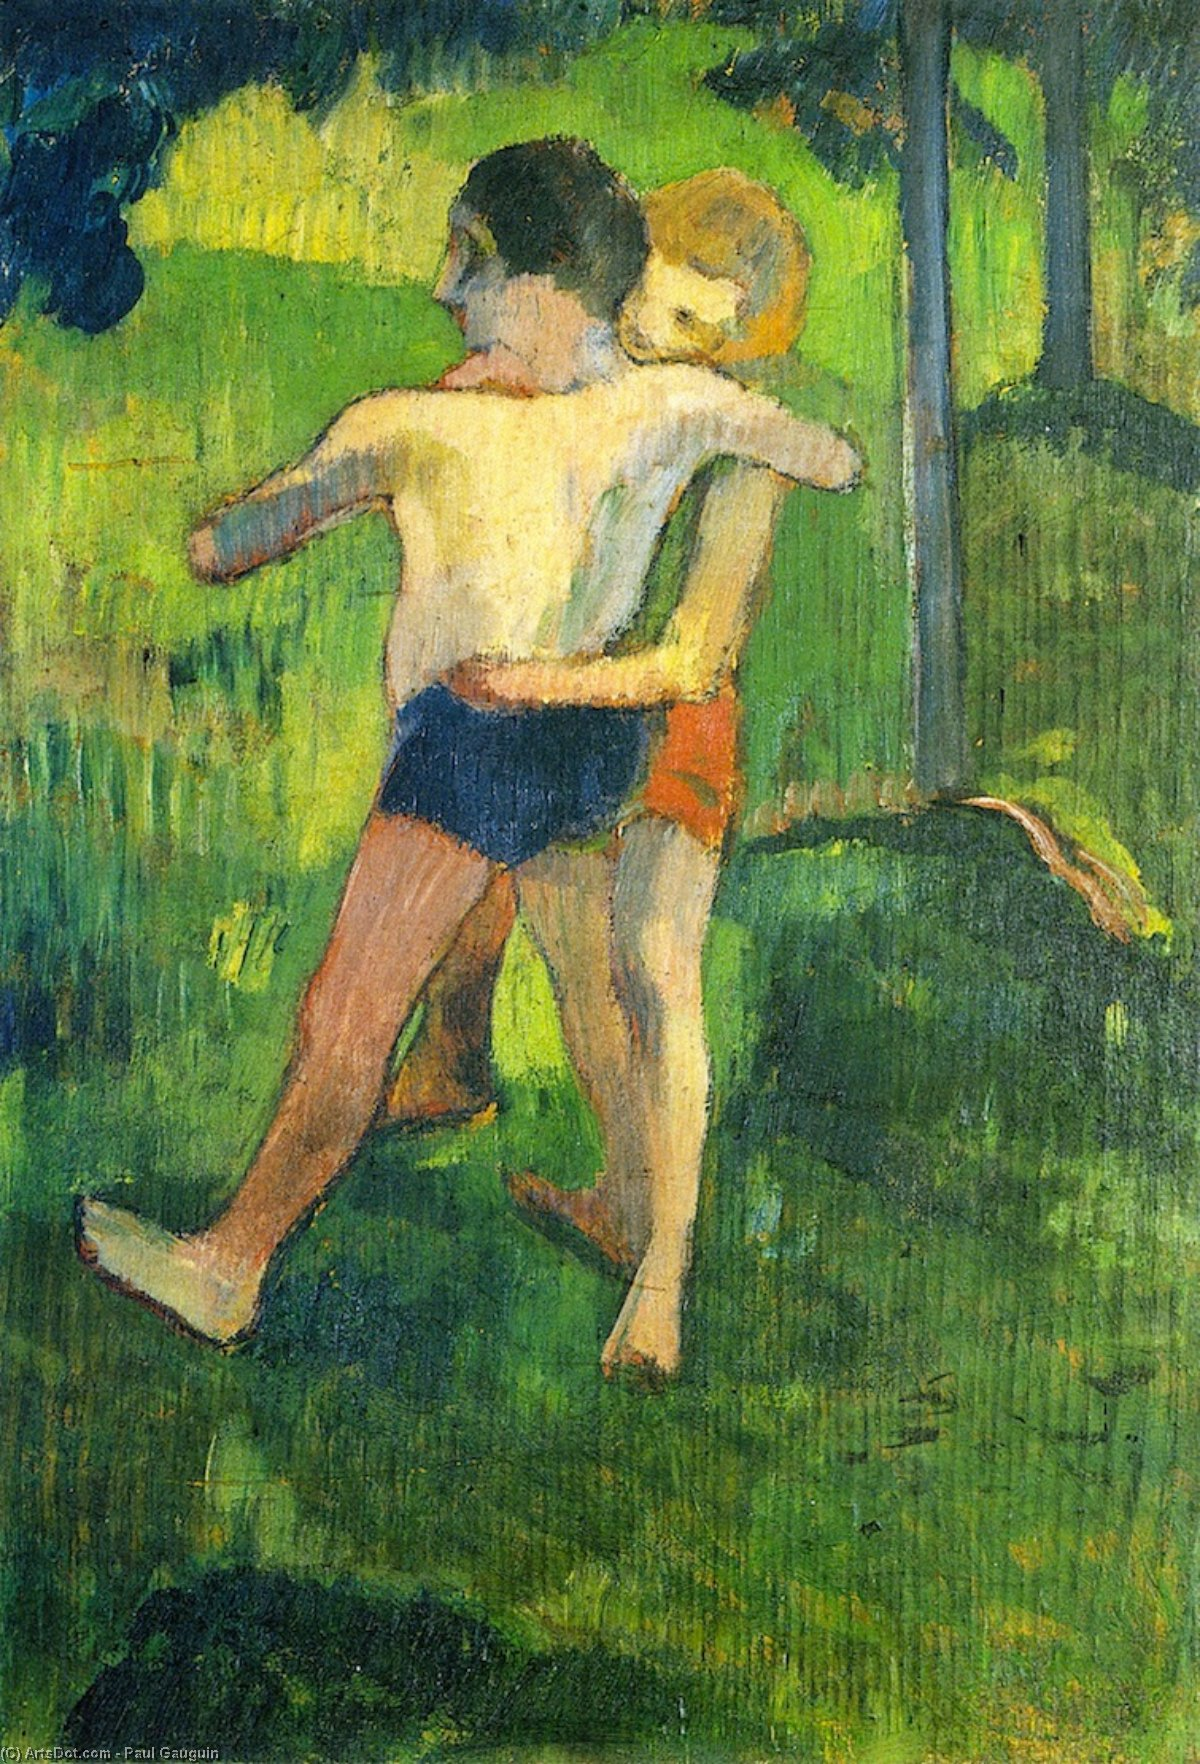 Kinder Wrestling, 1888 von Paul Gauguin (1848-1903, France) | Museumsqualität Prints Paul Gauguin | ArtsDot.com